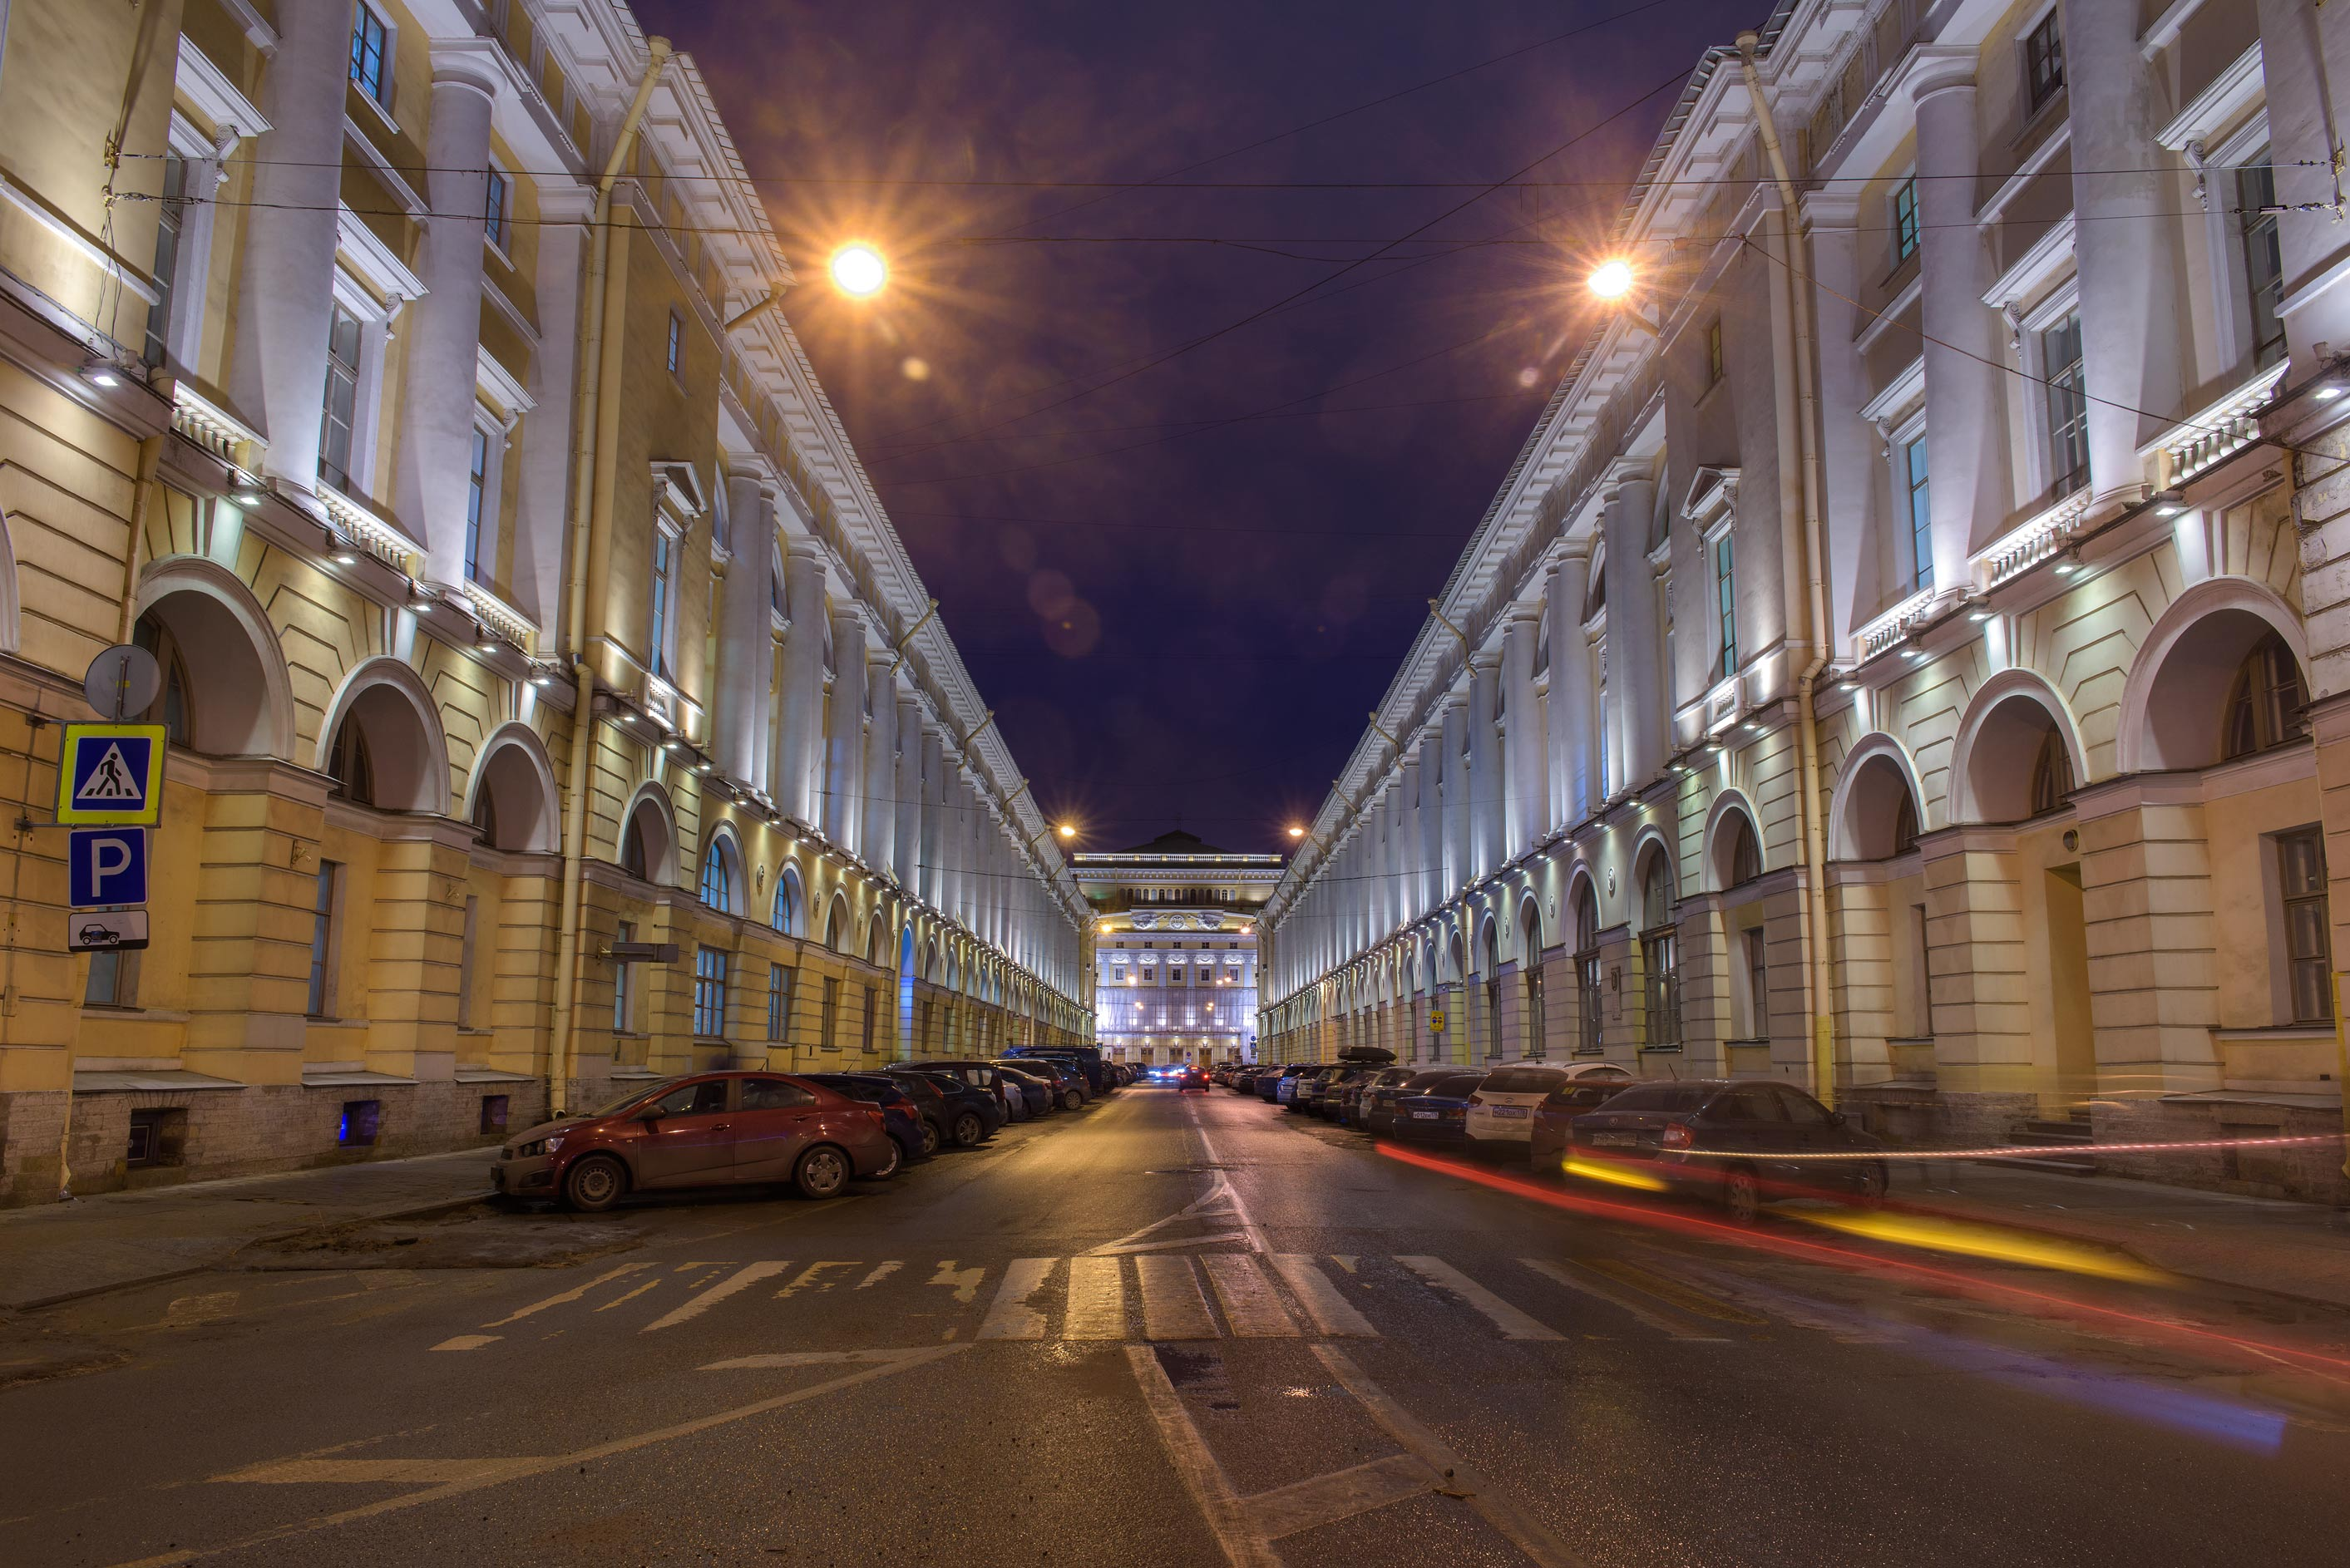 Zodchego Rossi St. at morning. St.Petersburg, Russia